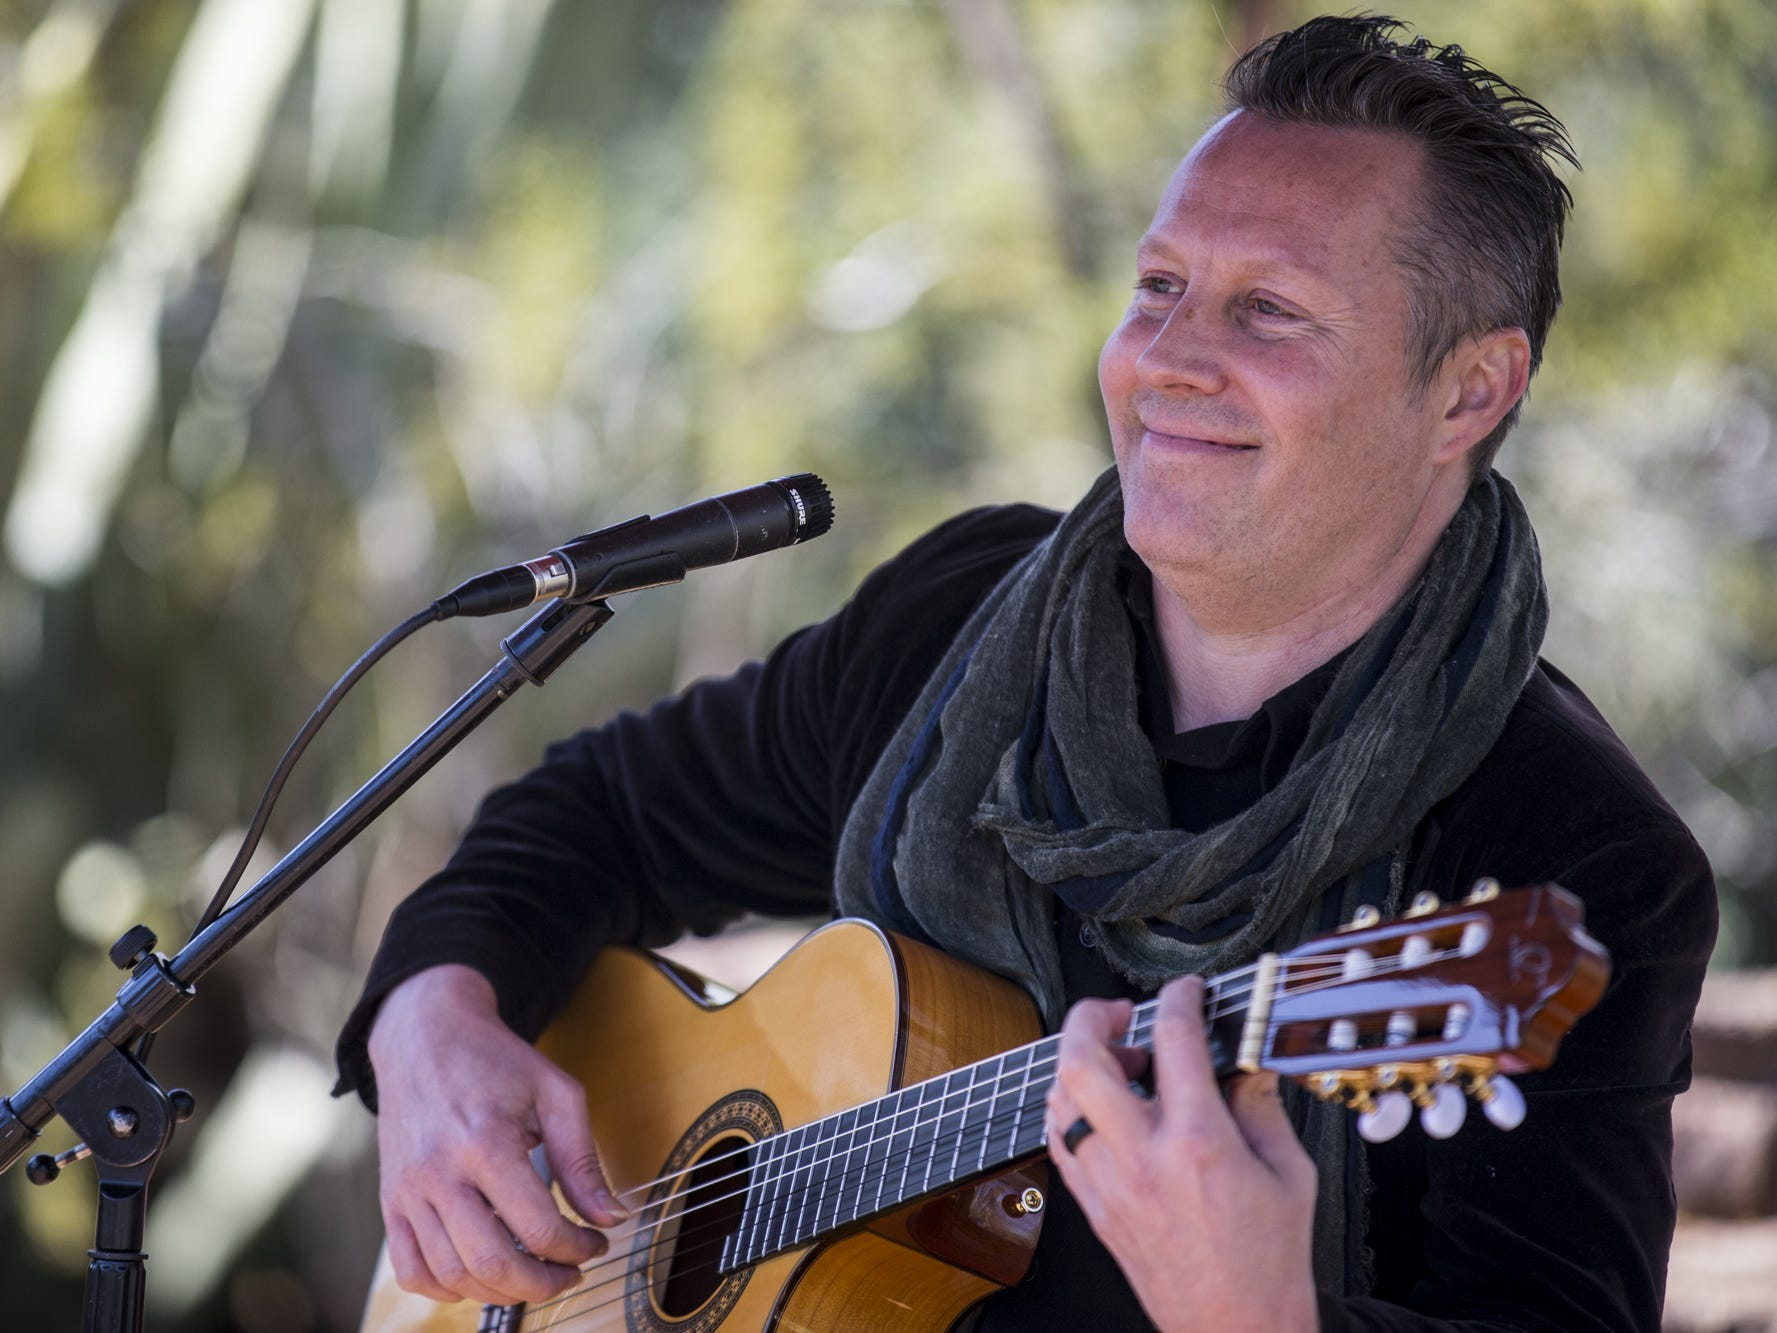 Eric Miller performs during Day 1 of the Devour Culinary Classic on Saturday, Feb. 23, 2019, at Desert Botanical Garden in Phoenix.